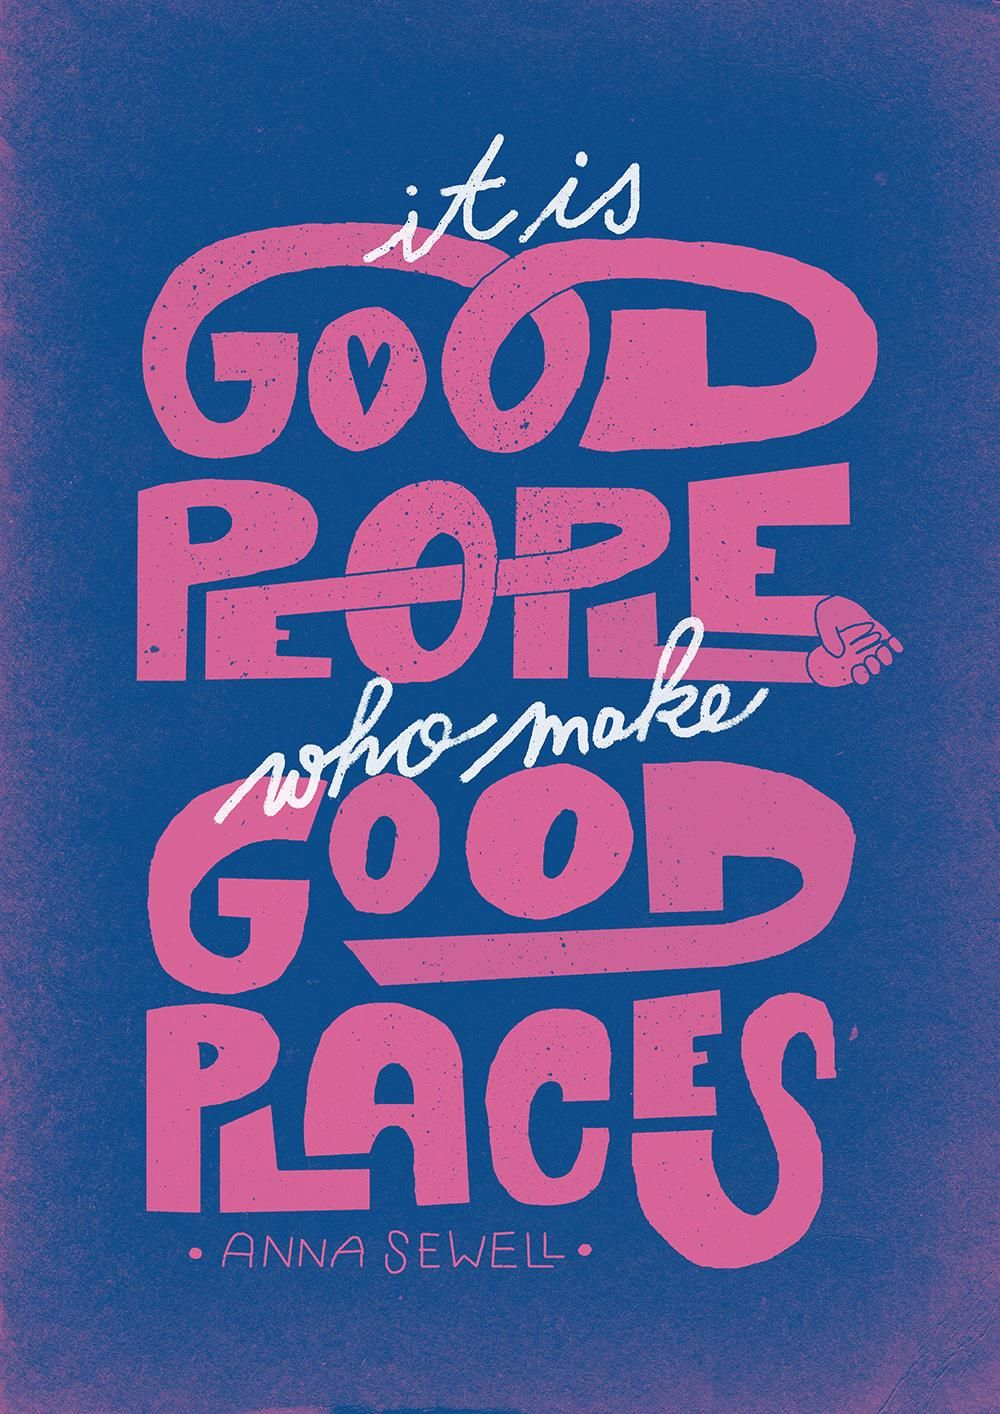 It is good people who make good places - image 4 - student project